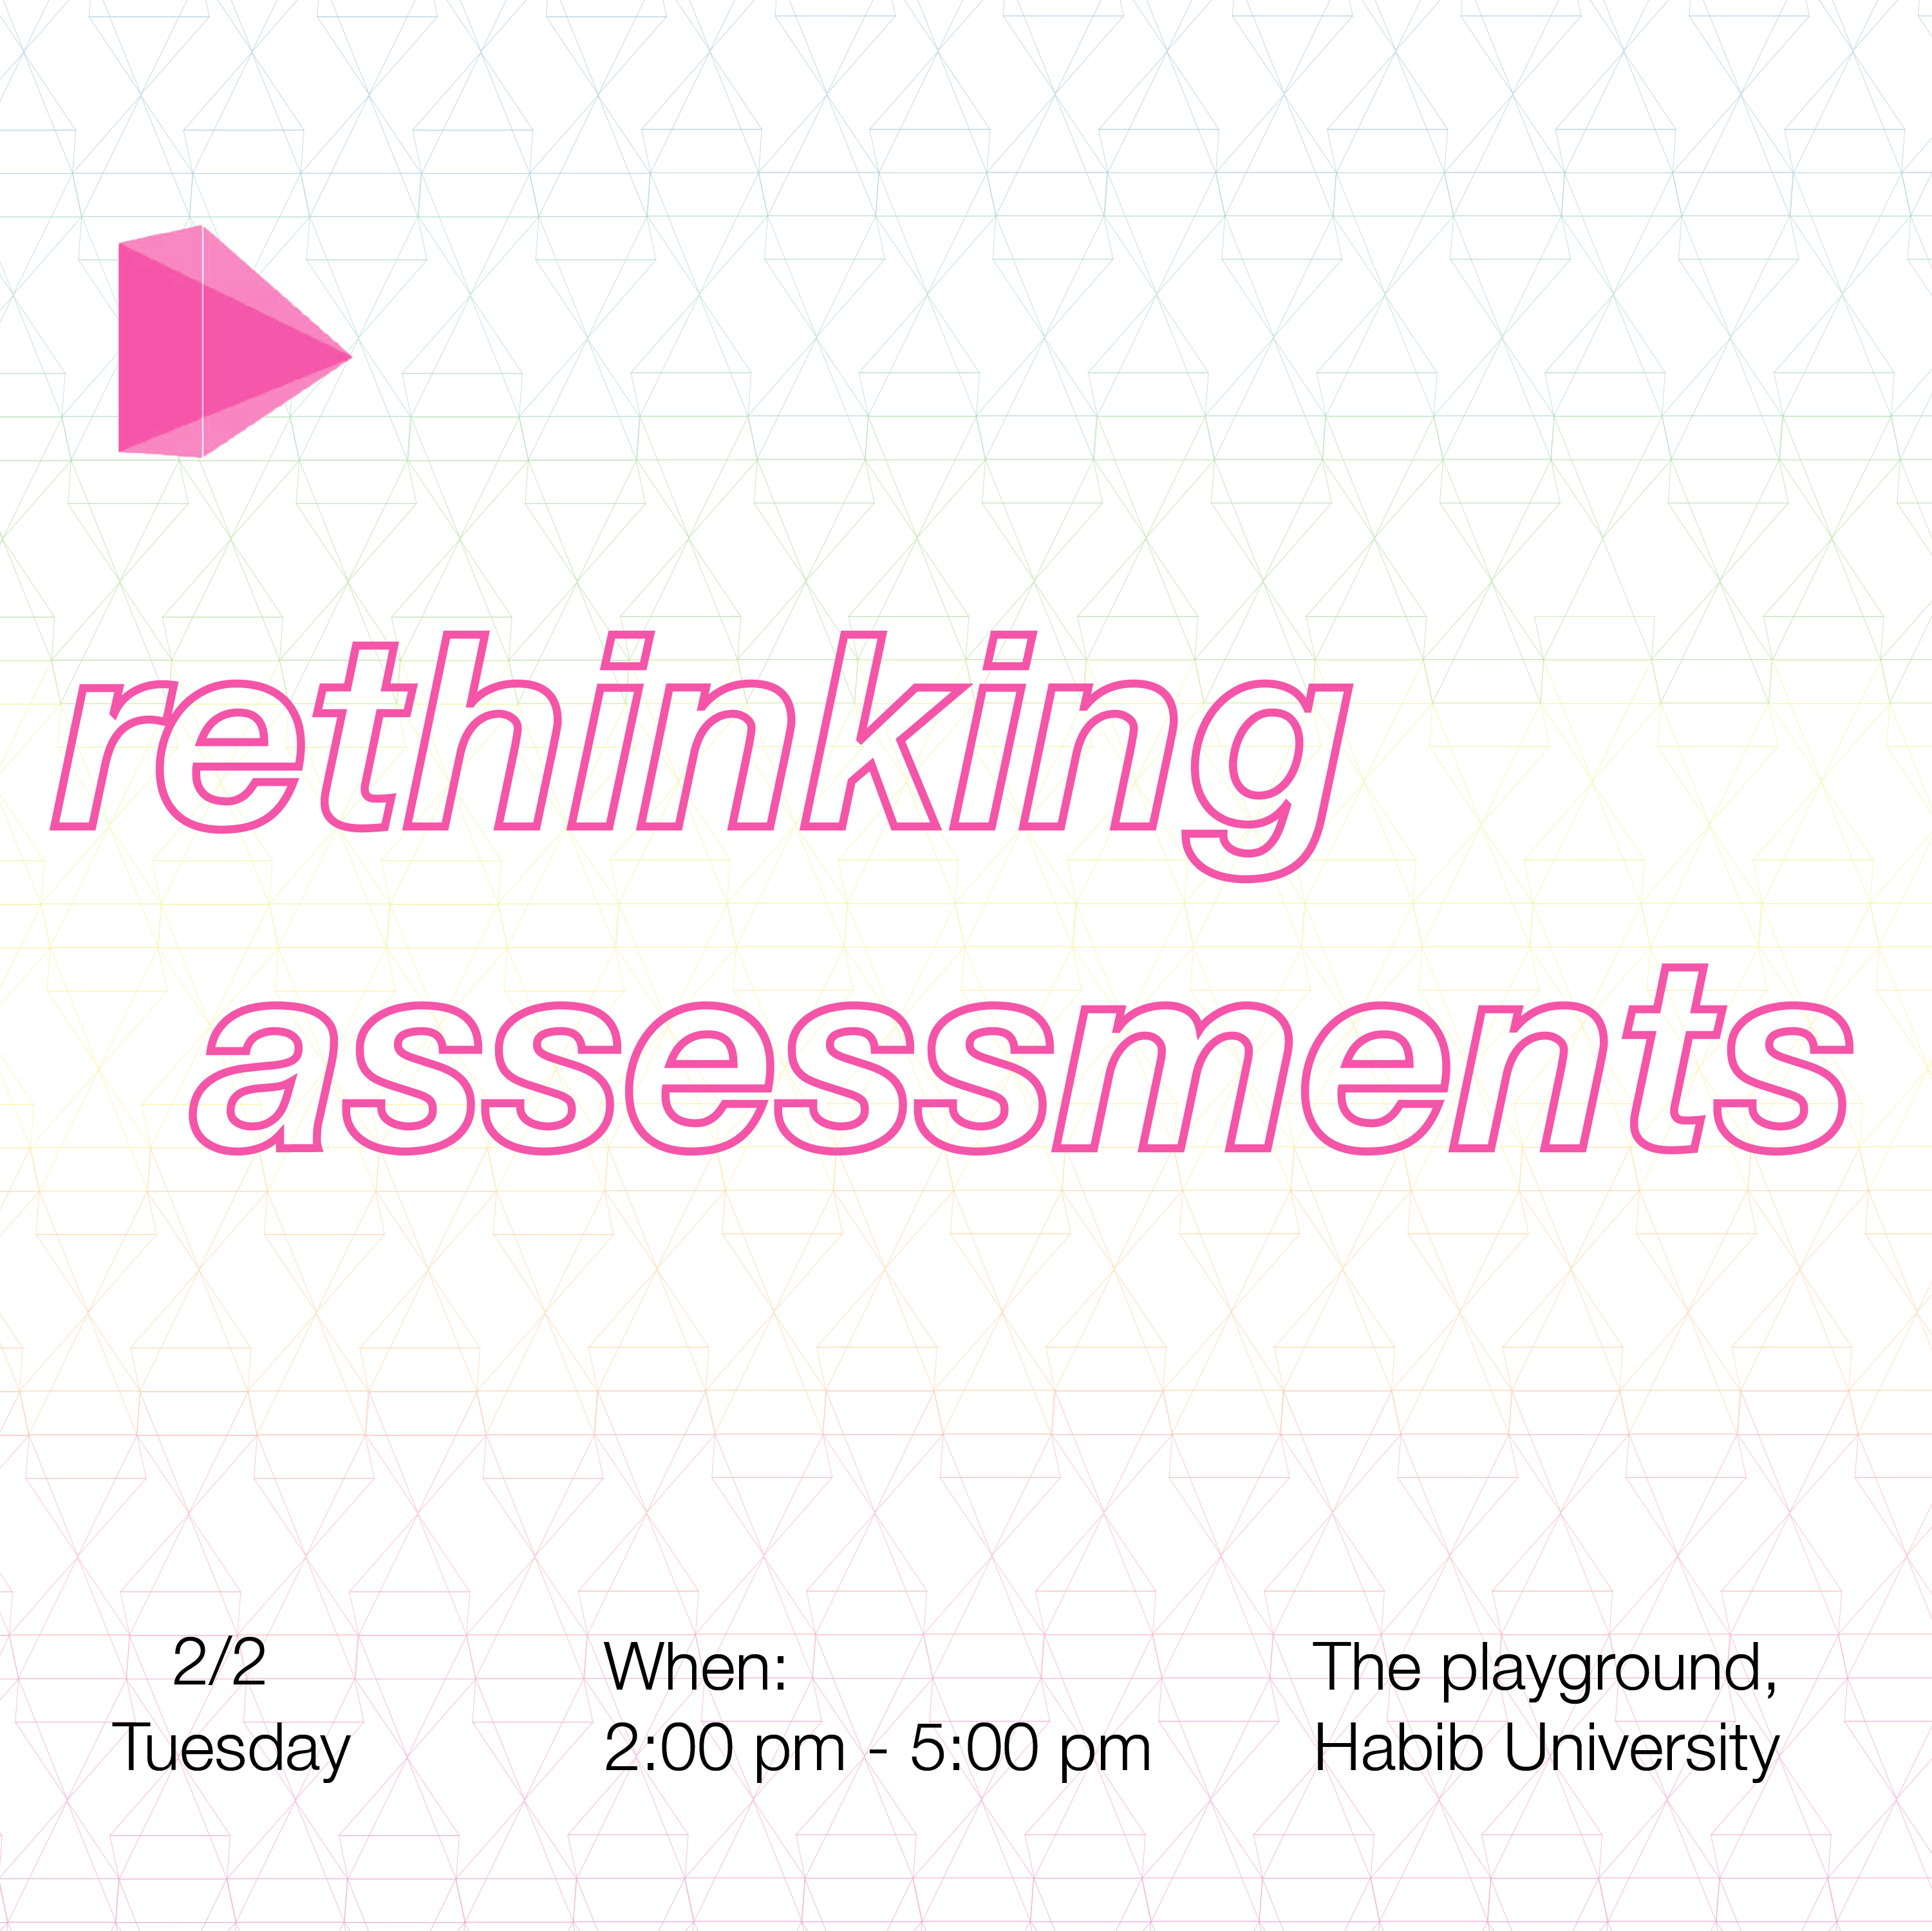 A Design Thinking Workshop on Rethinking Assessments